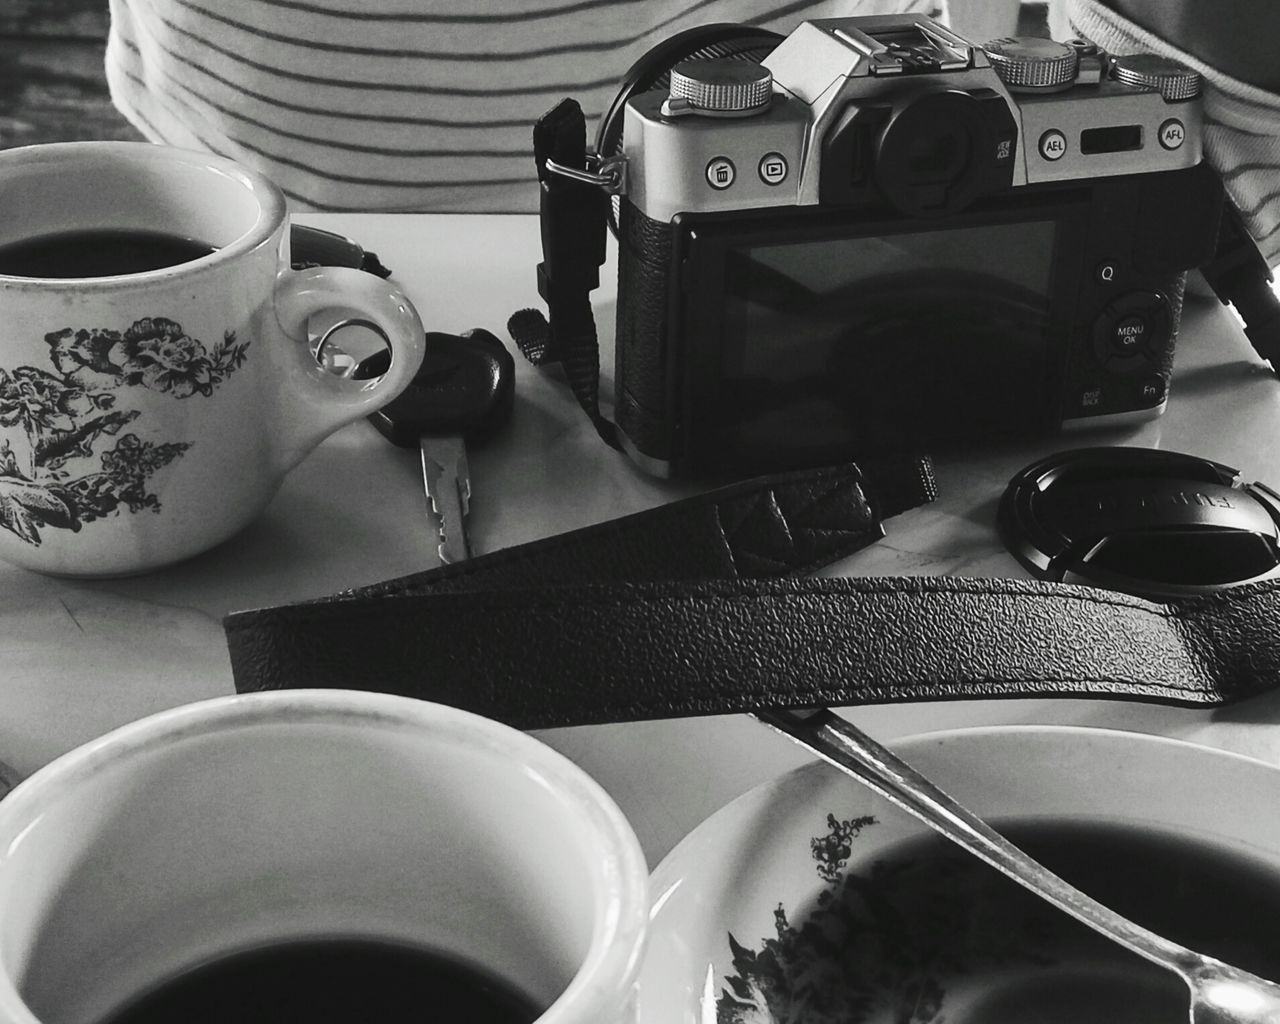 Technology Business Finance And Industry Indoors  Close-up No People Day Enjoying Life Coffee Break Coffee Camera Monochrome Photography Black And White Naturelovers Monochrome Blackandwhite Humaninterest Streetphotography Activity Table Coffee Time